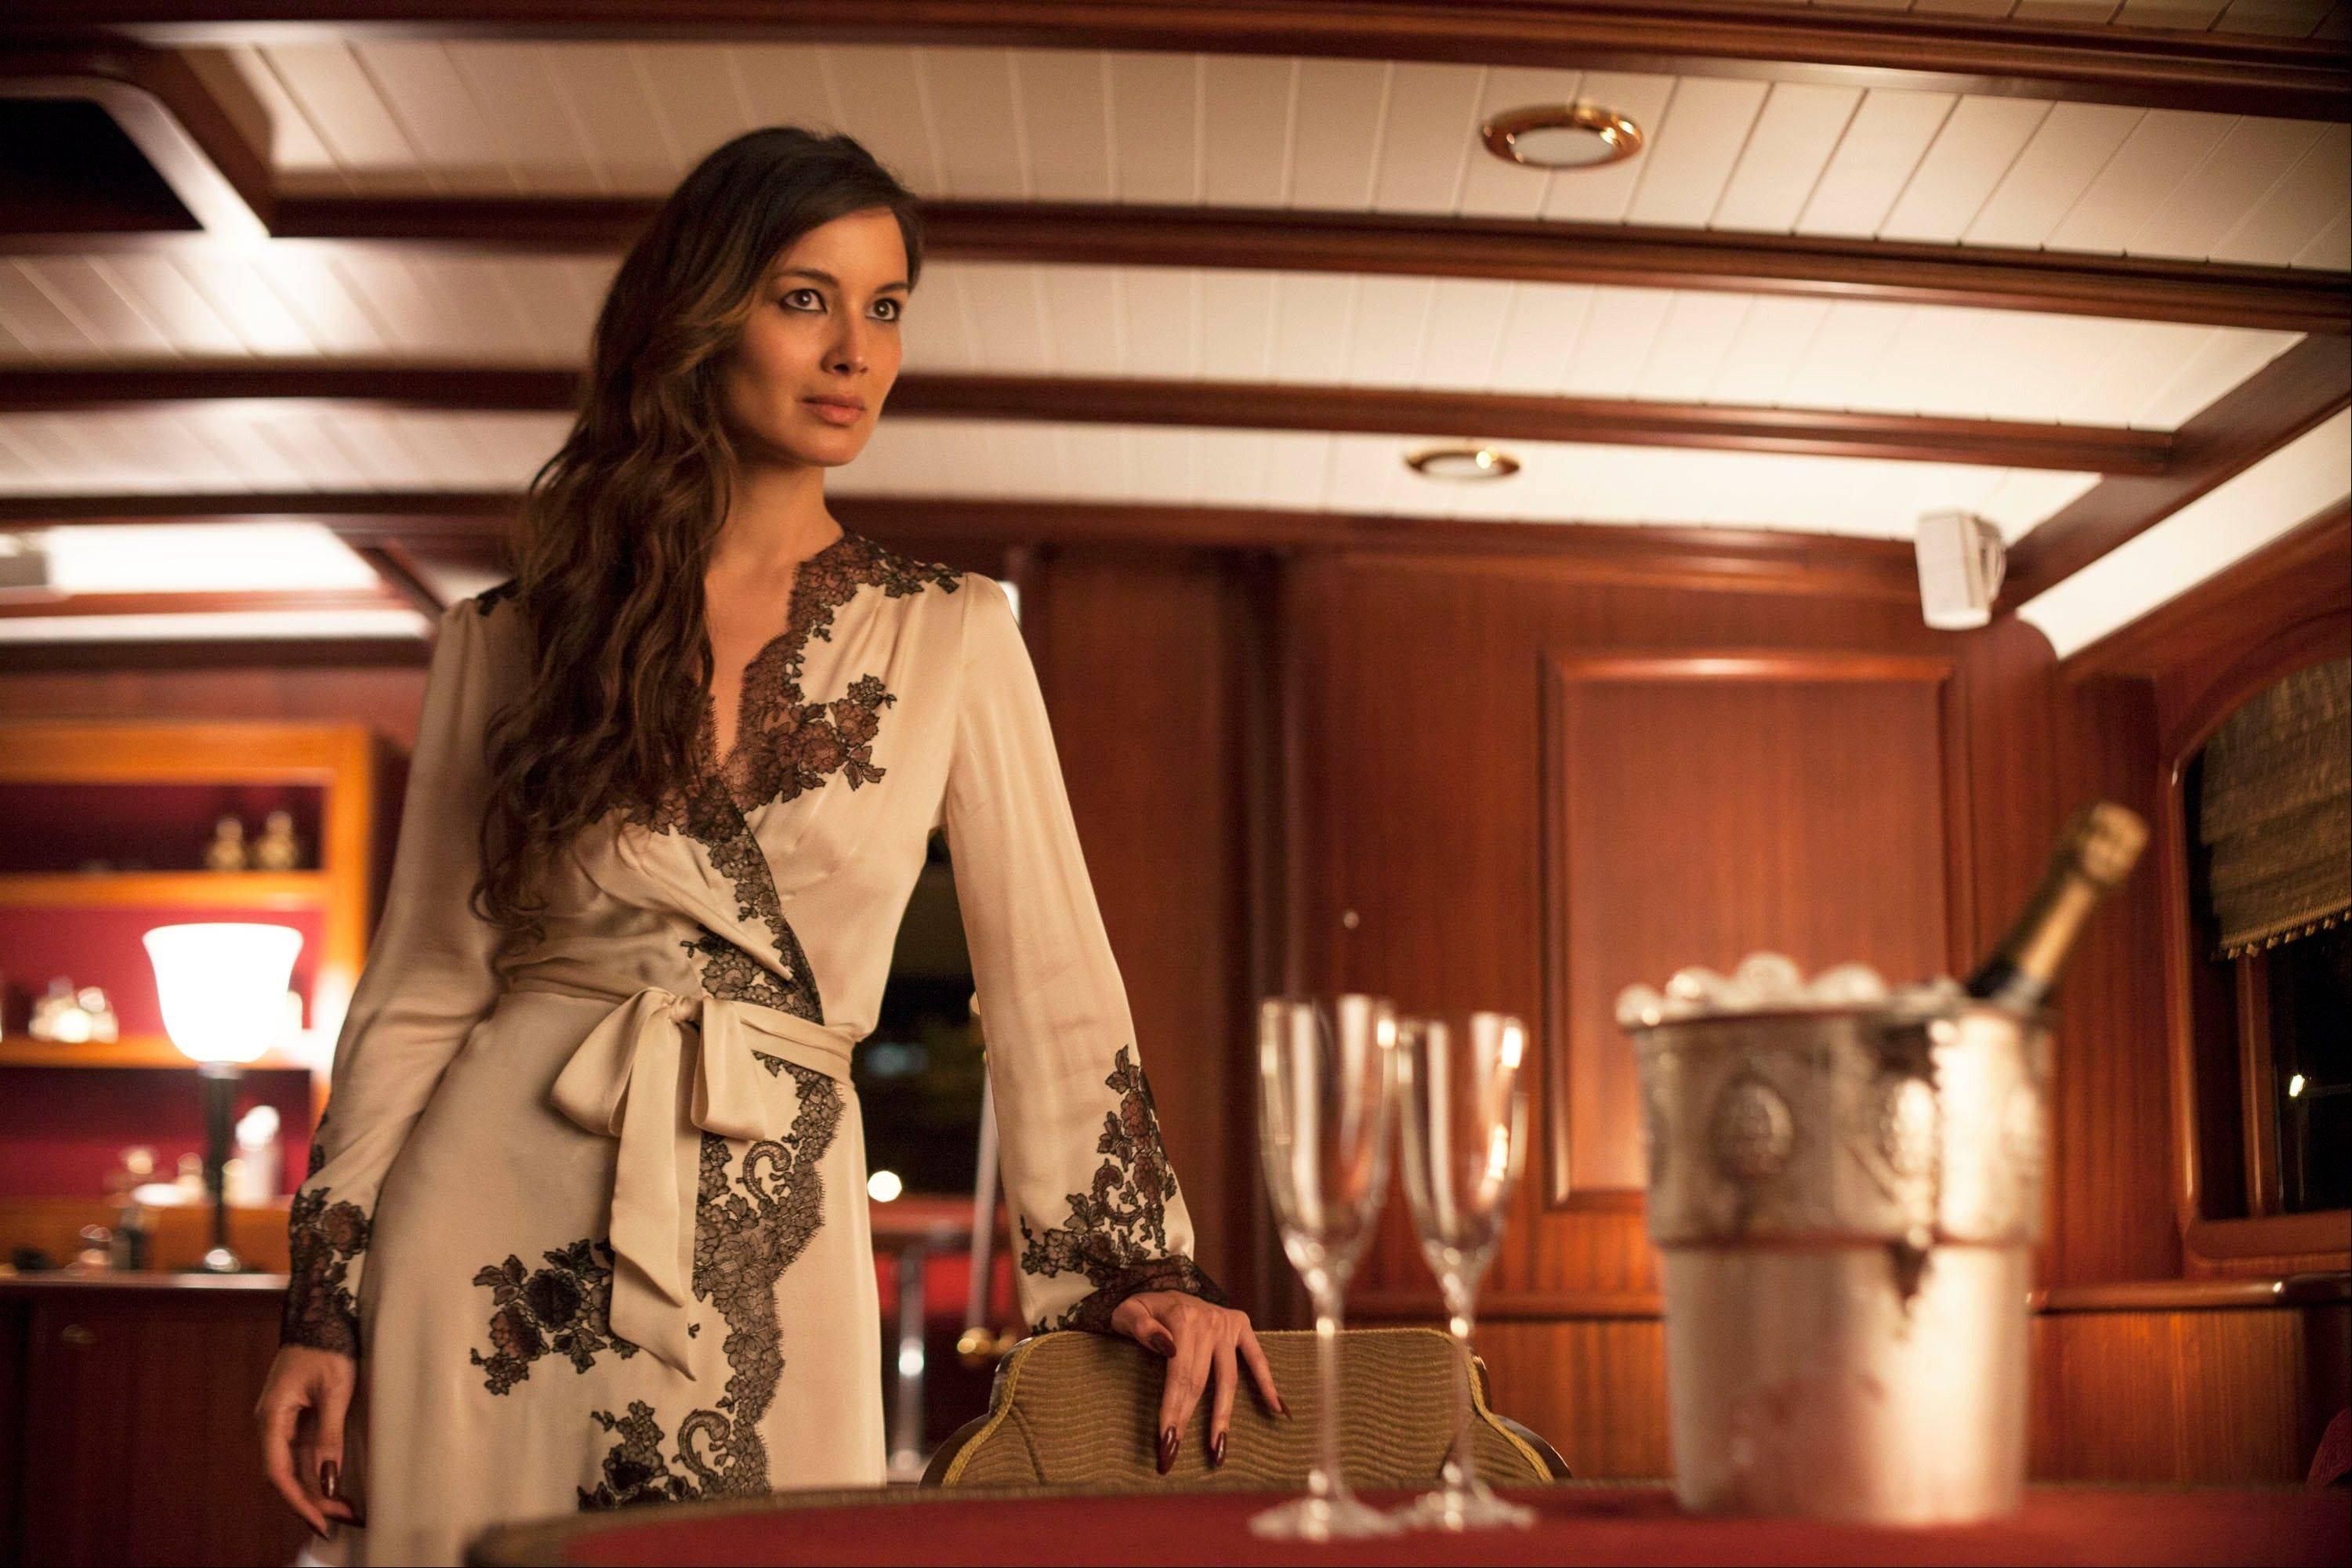 "This film image released by Sony Pictures shows Berenice Marlohe in a scene from the film ""Skyfall."" Costume designer Jany Temime says her mantra for the entire wardrobe of �Skyfall,� which opens Friday, was �iconic for 2012.� For Marlohe, Temime envisioned an Ava Gardner type."